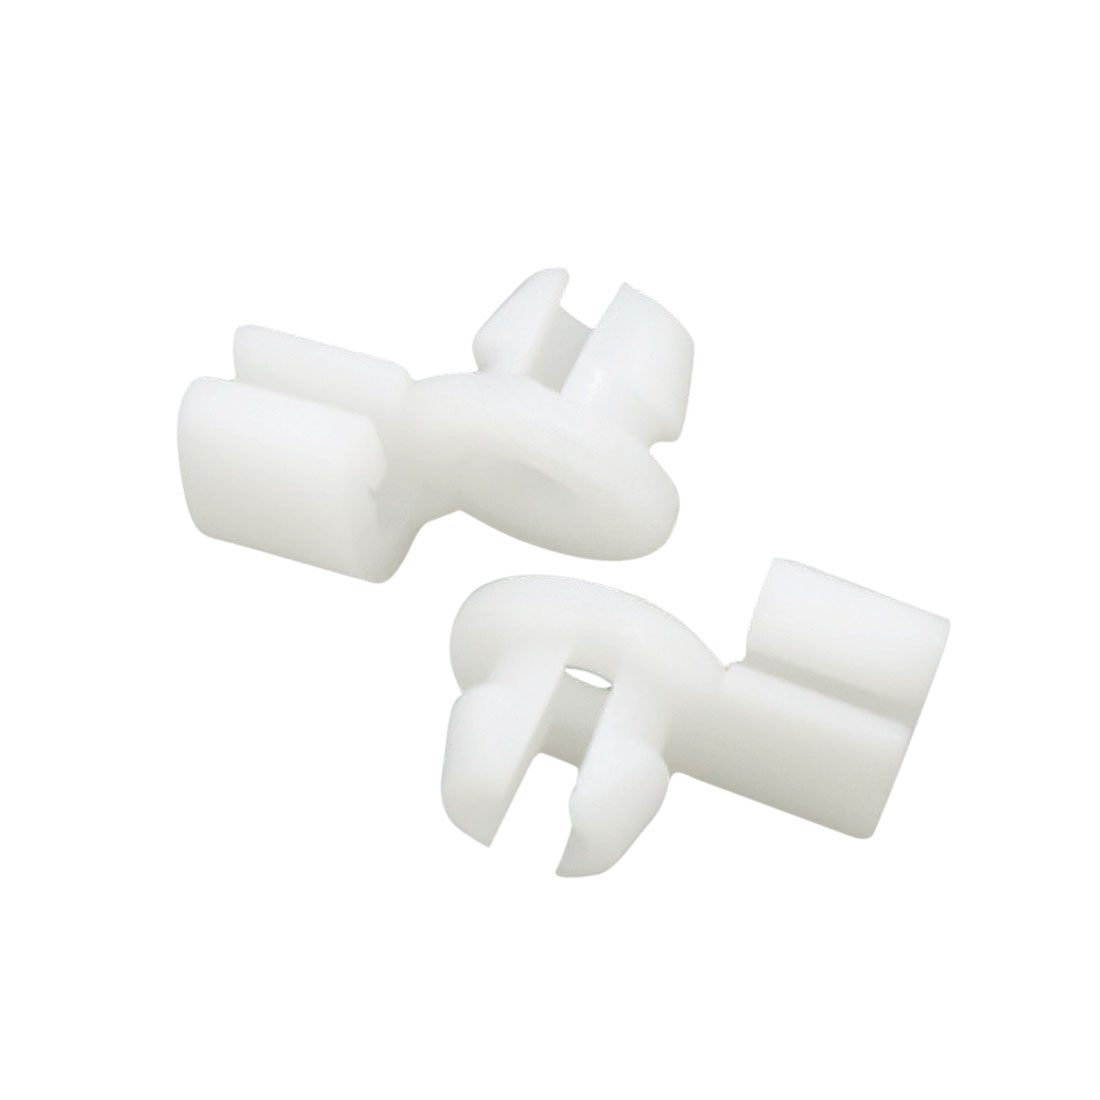 100pcs 8.5mm Hole Dia Plastic Rivets Trim Fastener Car Door Moulding Clips White